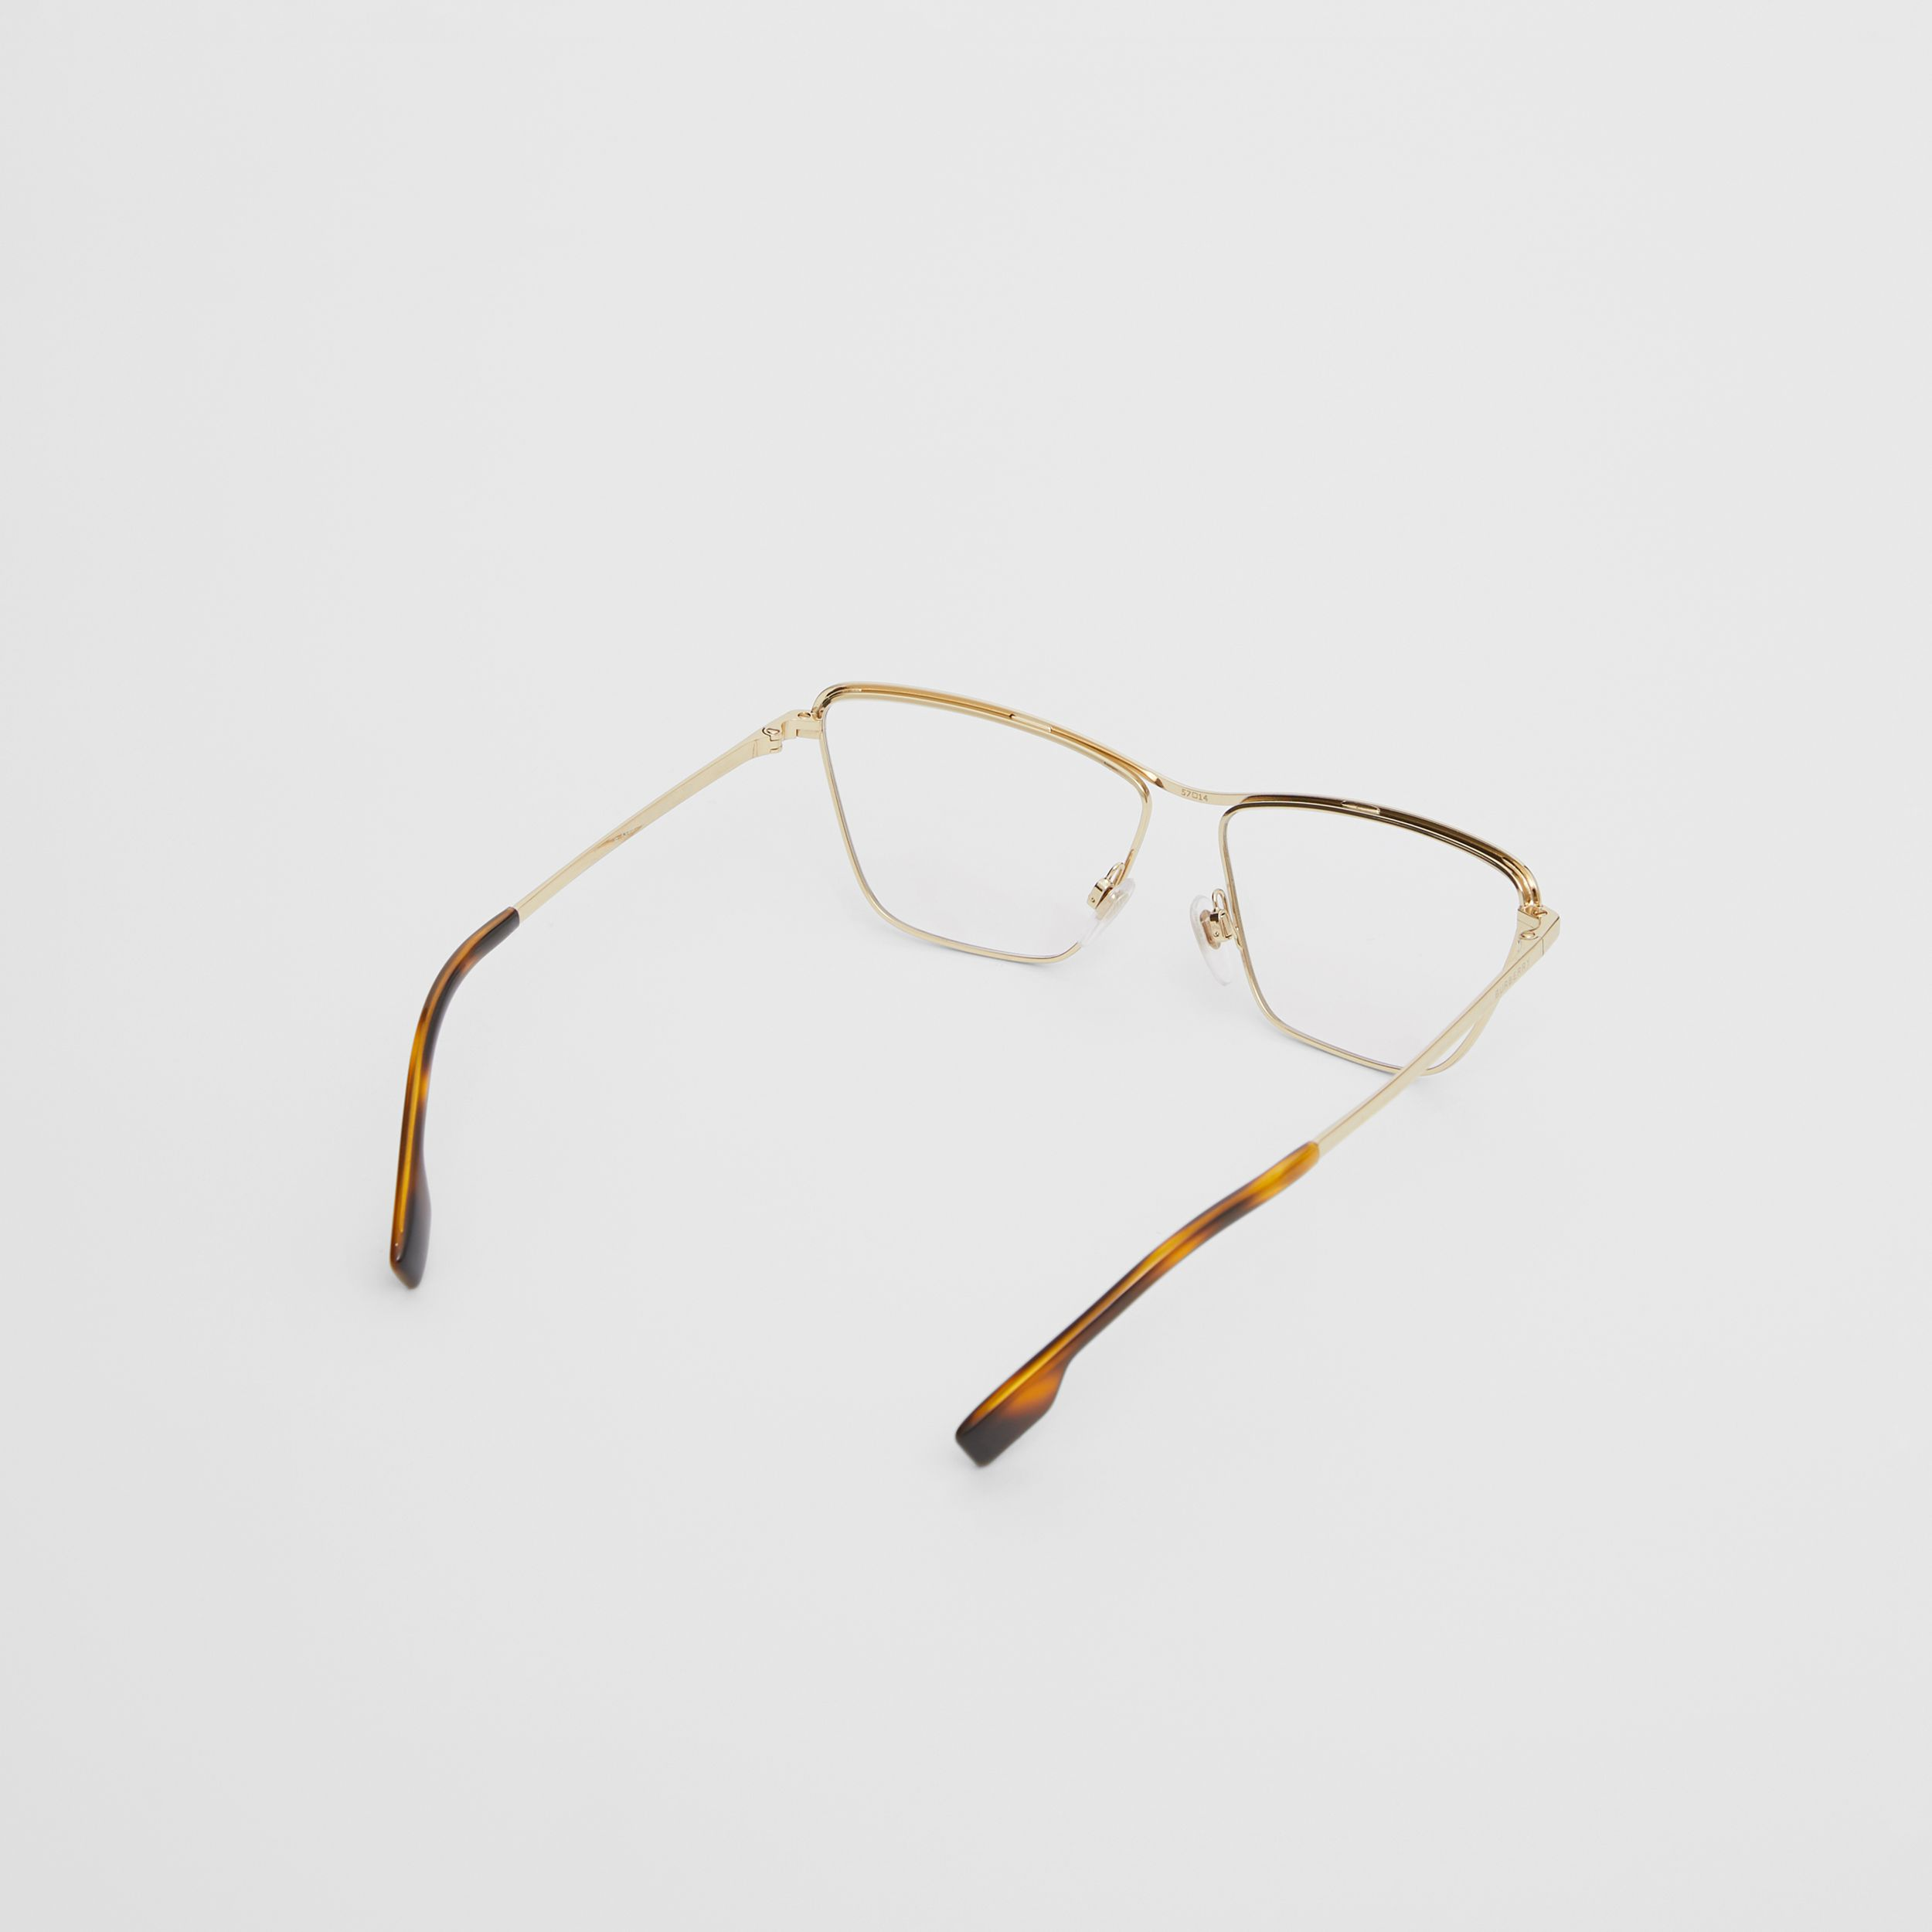 Rectangular Optical Frames in Light Gold - Women | Burberry - 4